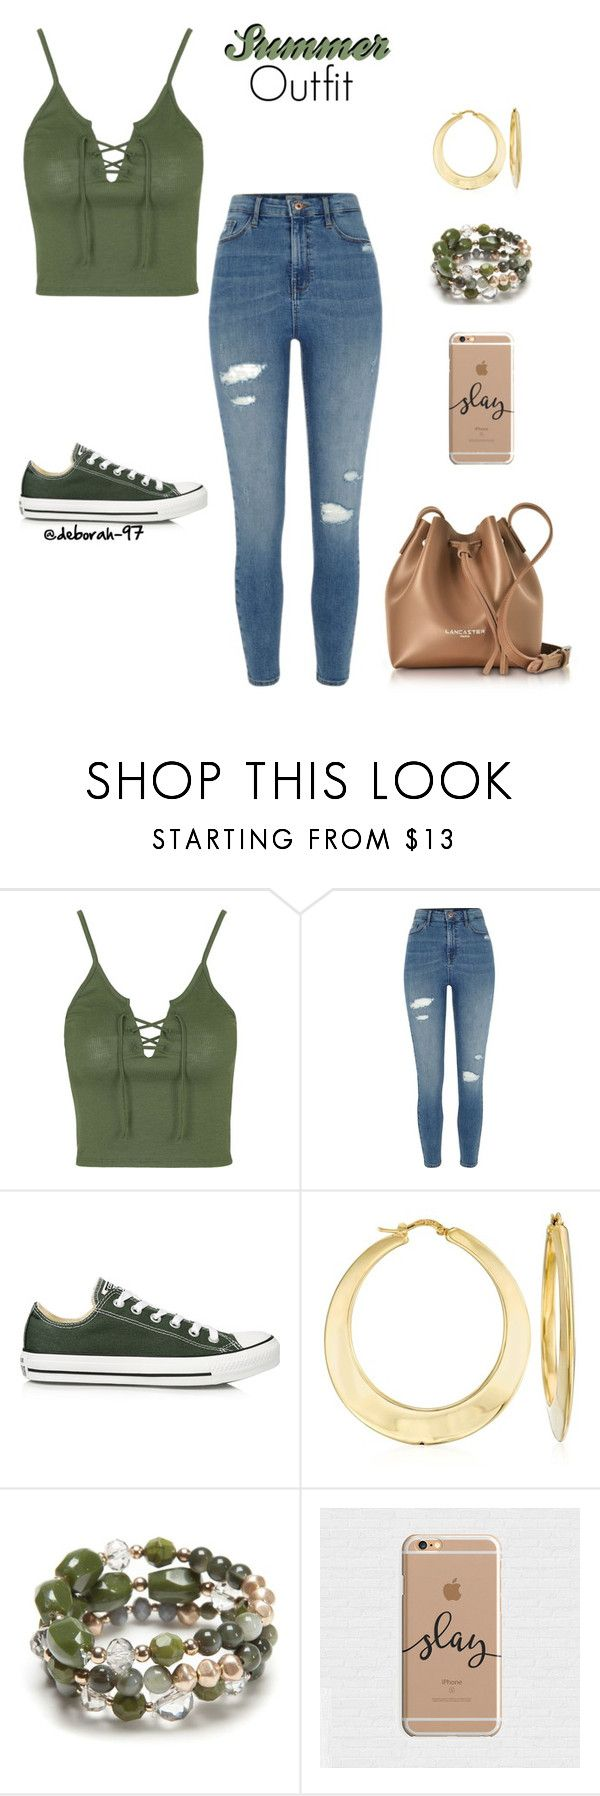 """Summer Outfit #6"" by deborah-97 ❤ liked on Polyvore featuring Topshop, River Island, Converse, Ross-Simons, New Directions and Lancaster"